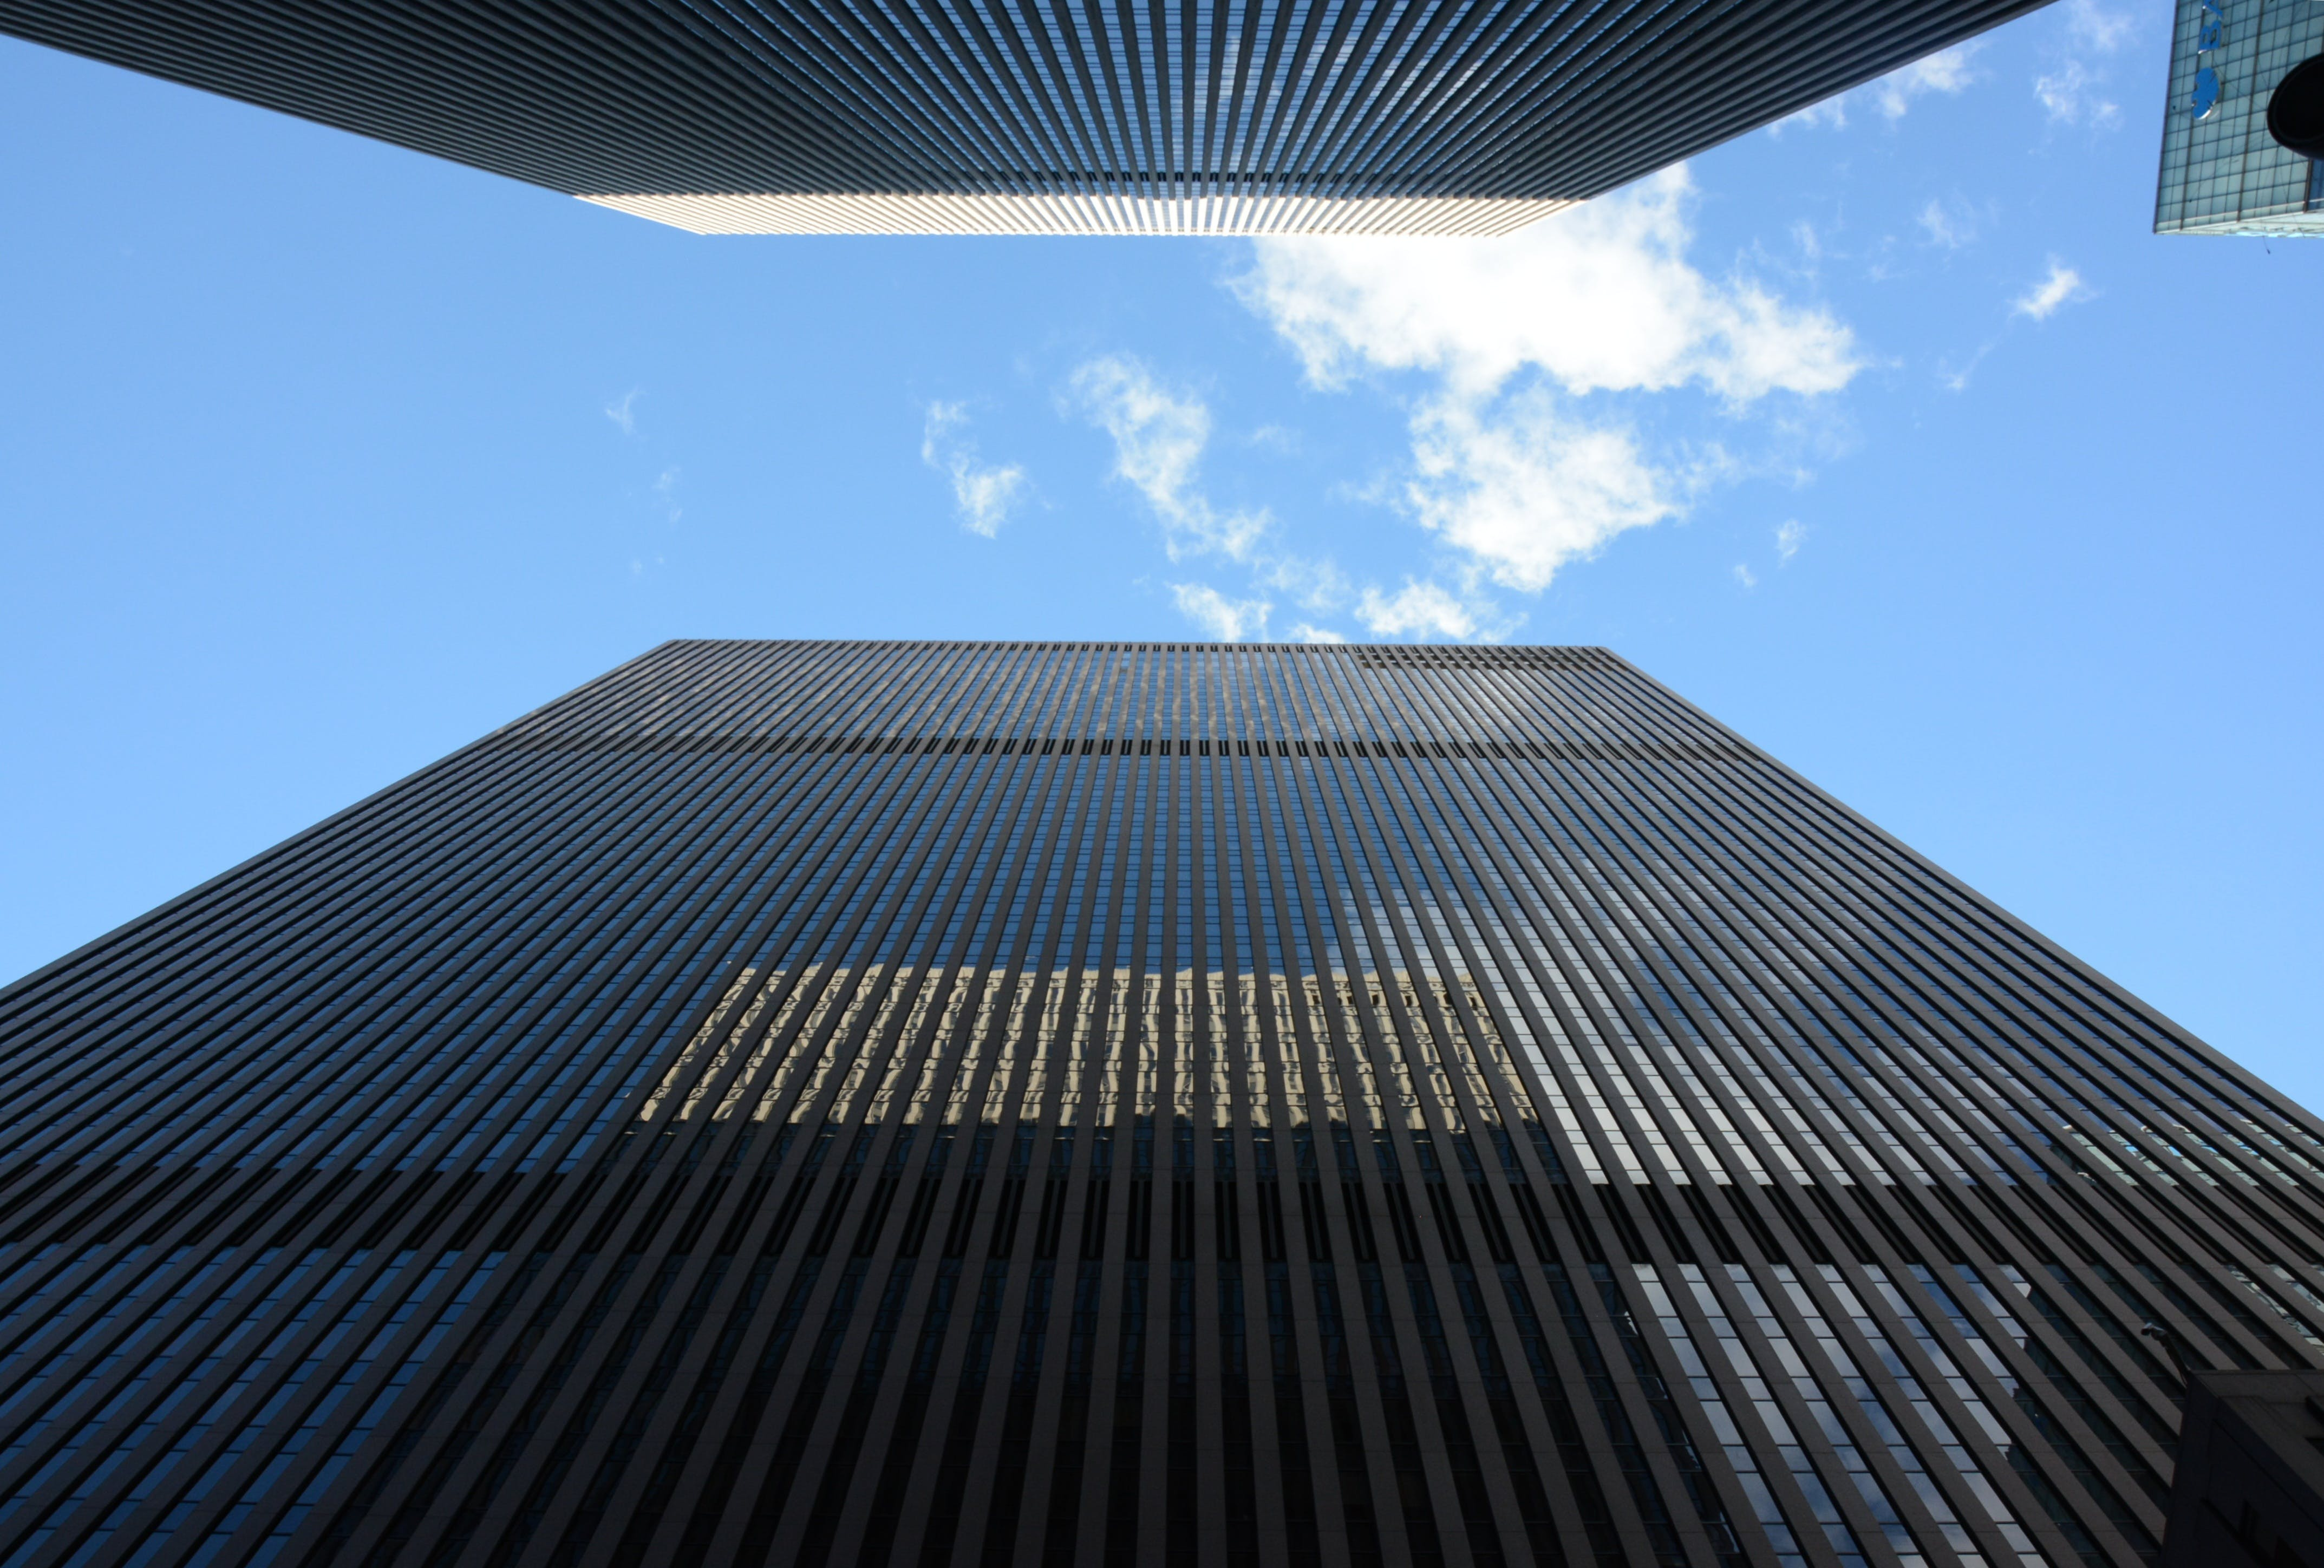 Low-angle Photo of High-rise Building